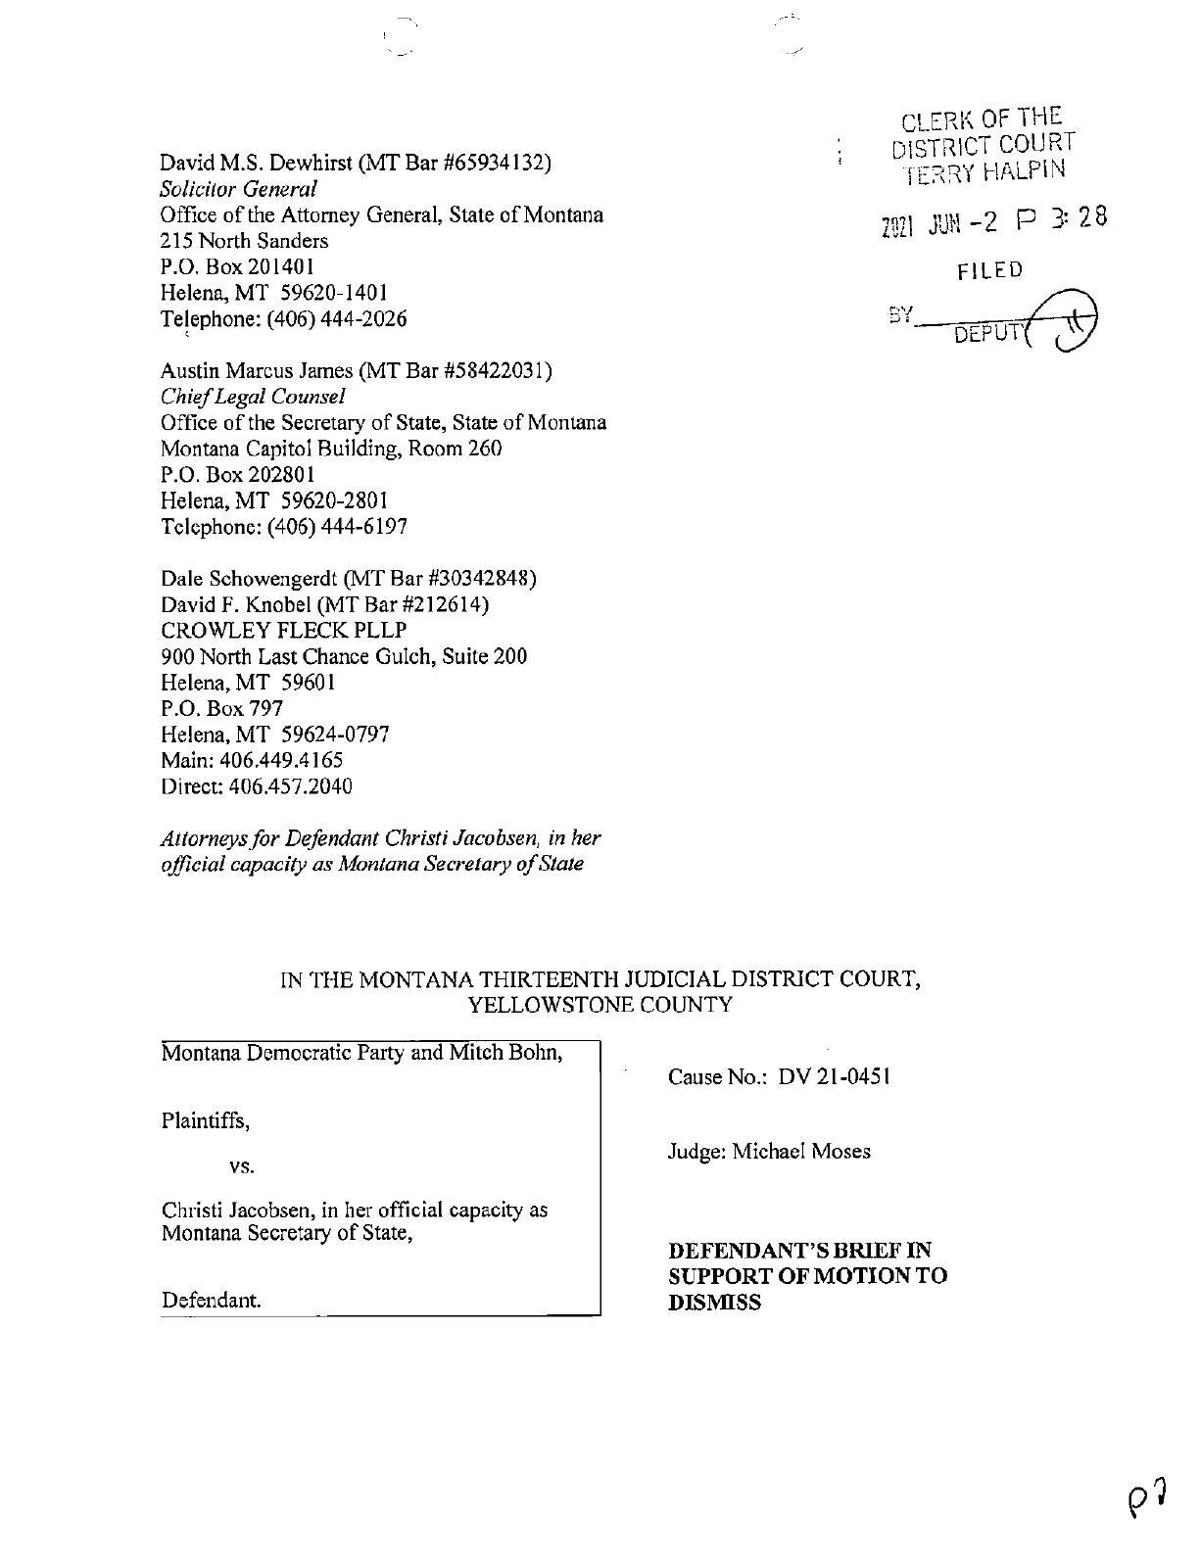 Brief in support of motion to dismiss